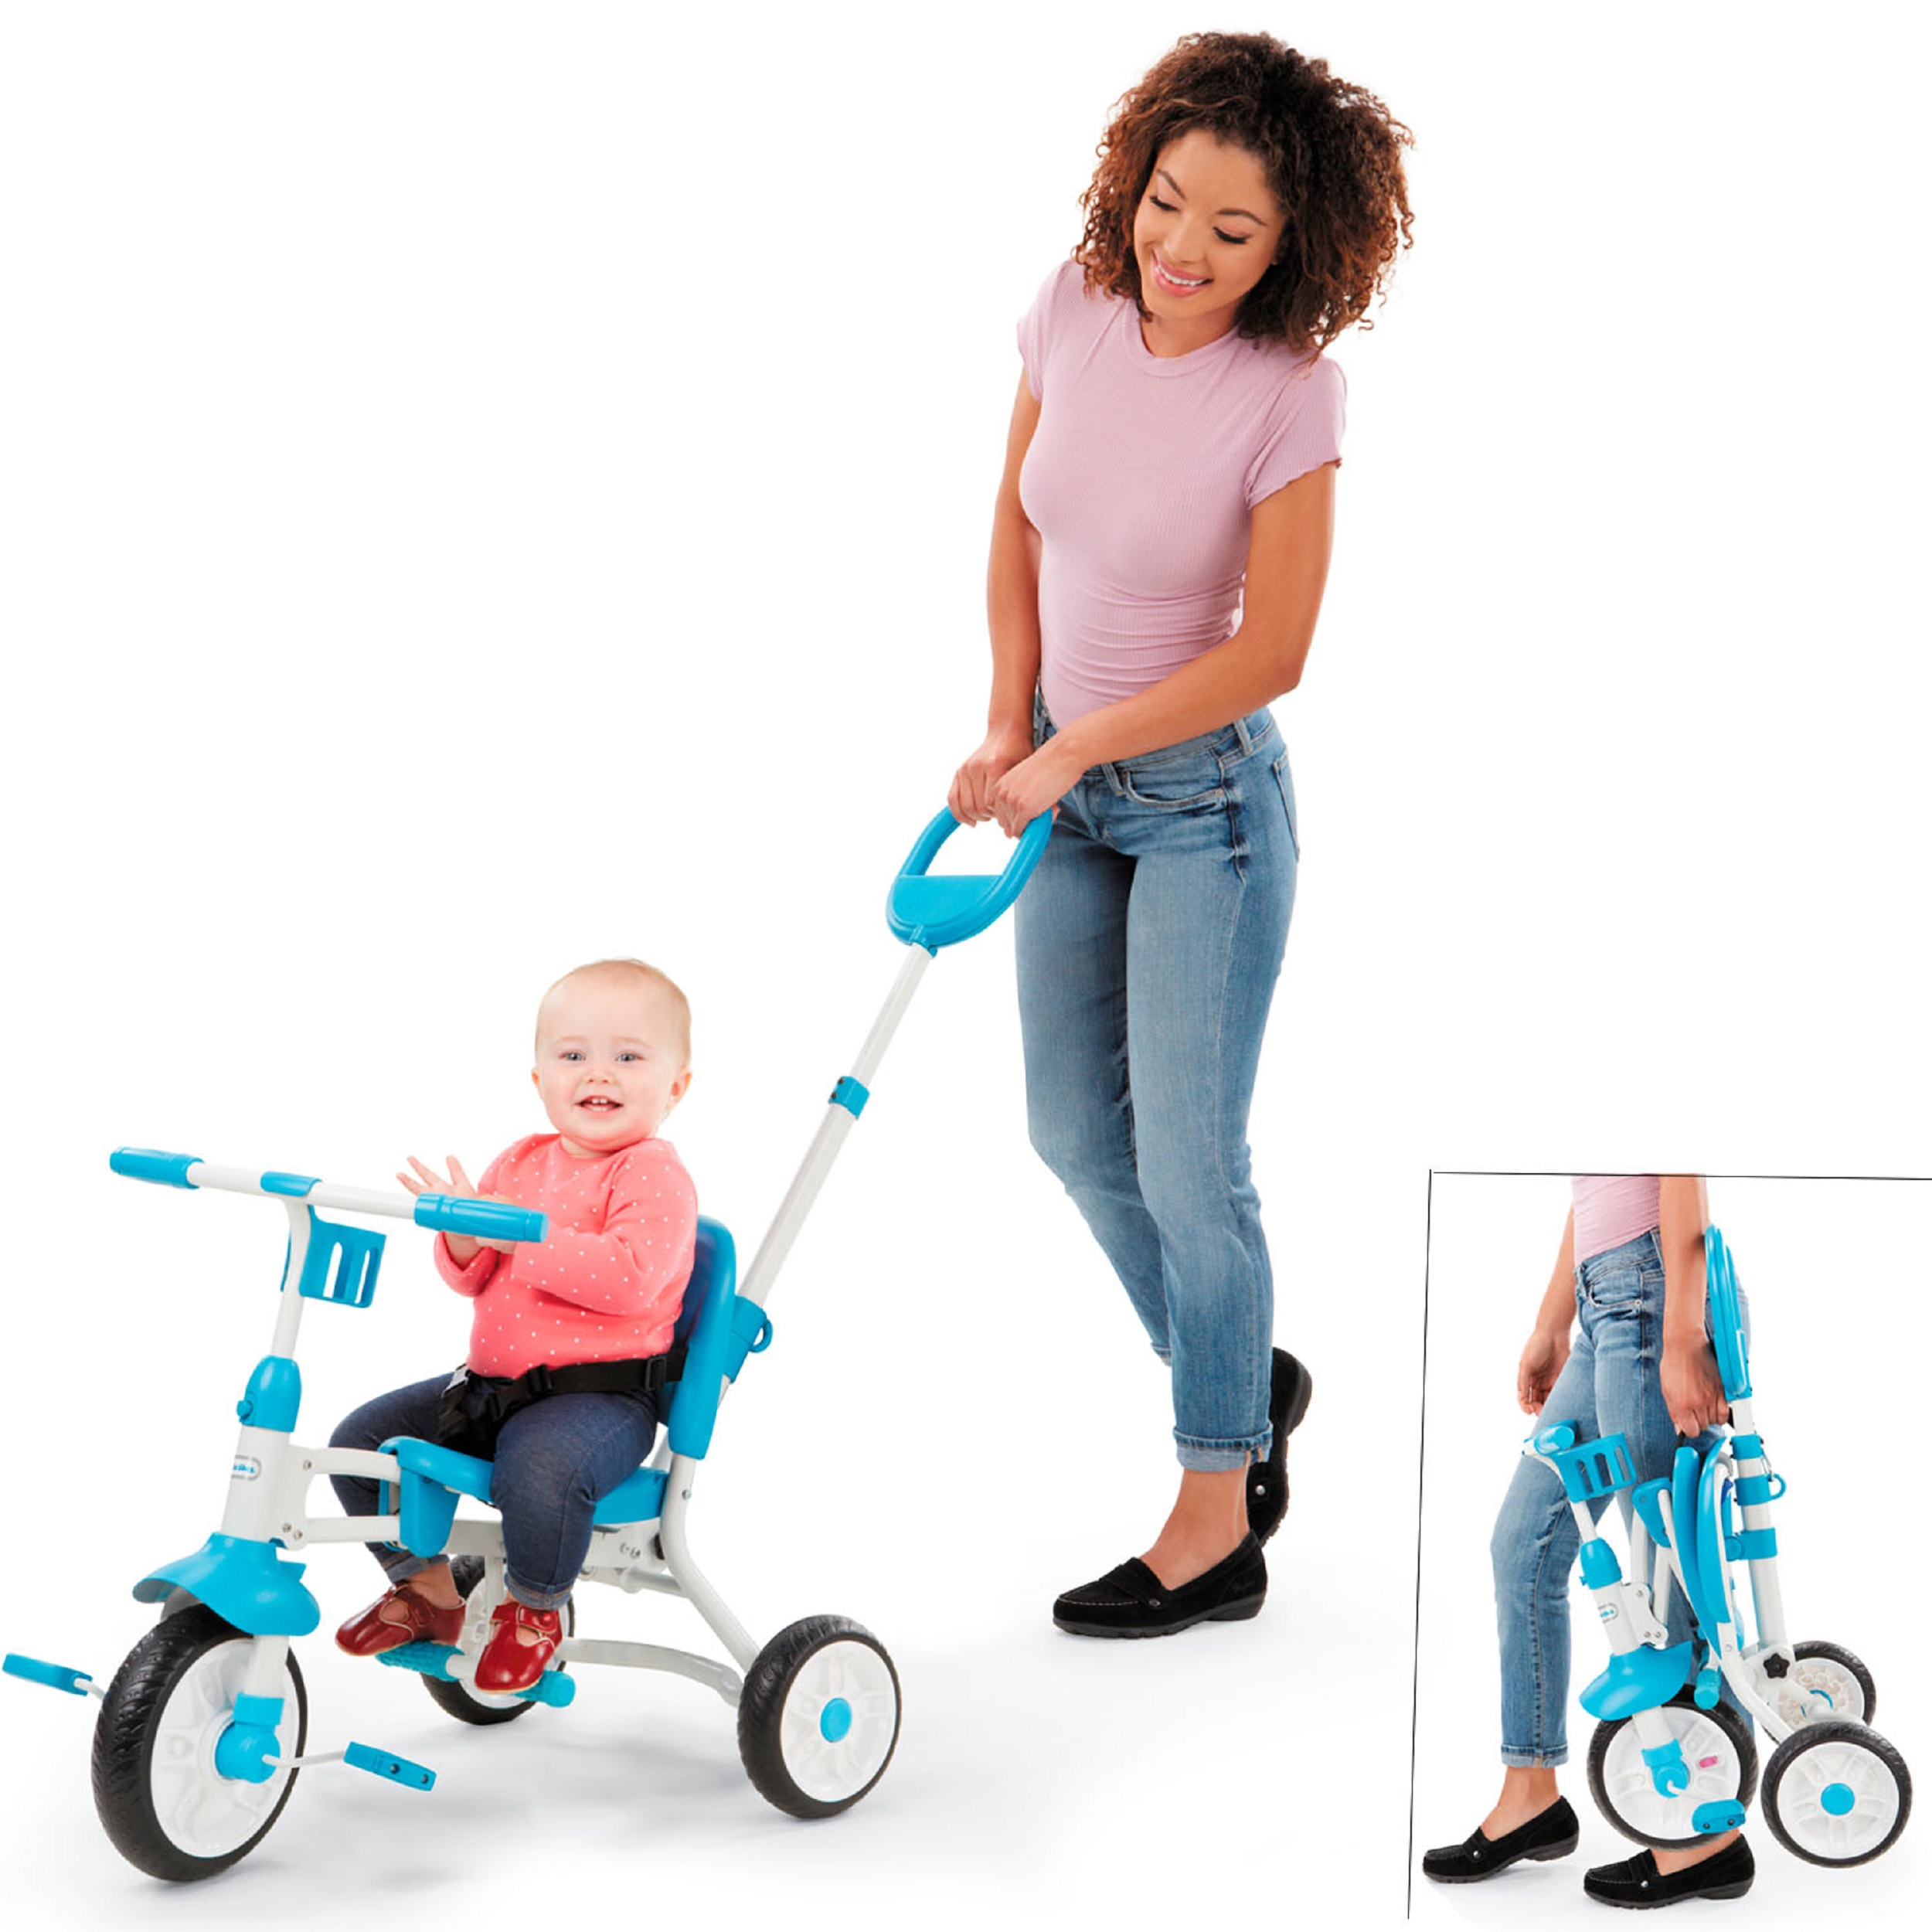 Little Tikes Pack 'n 3-in-1 Go Trike, Teal